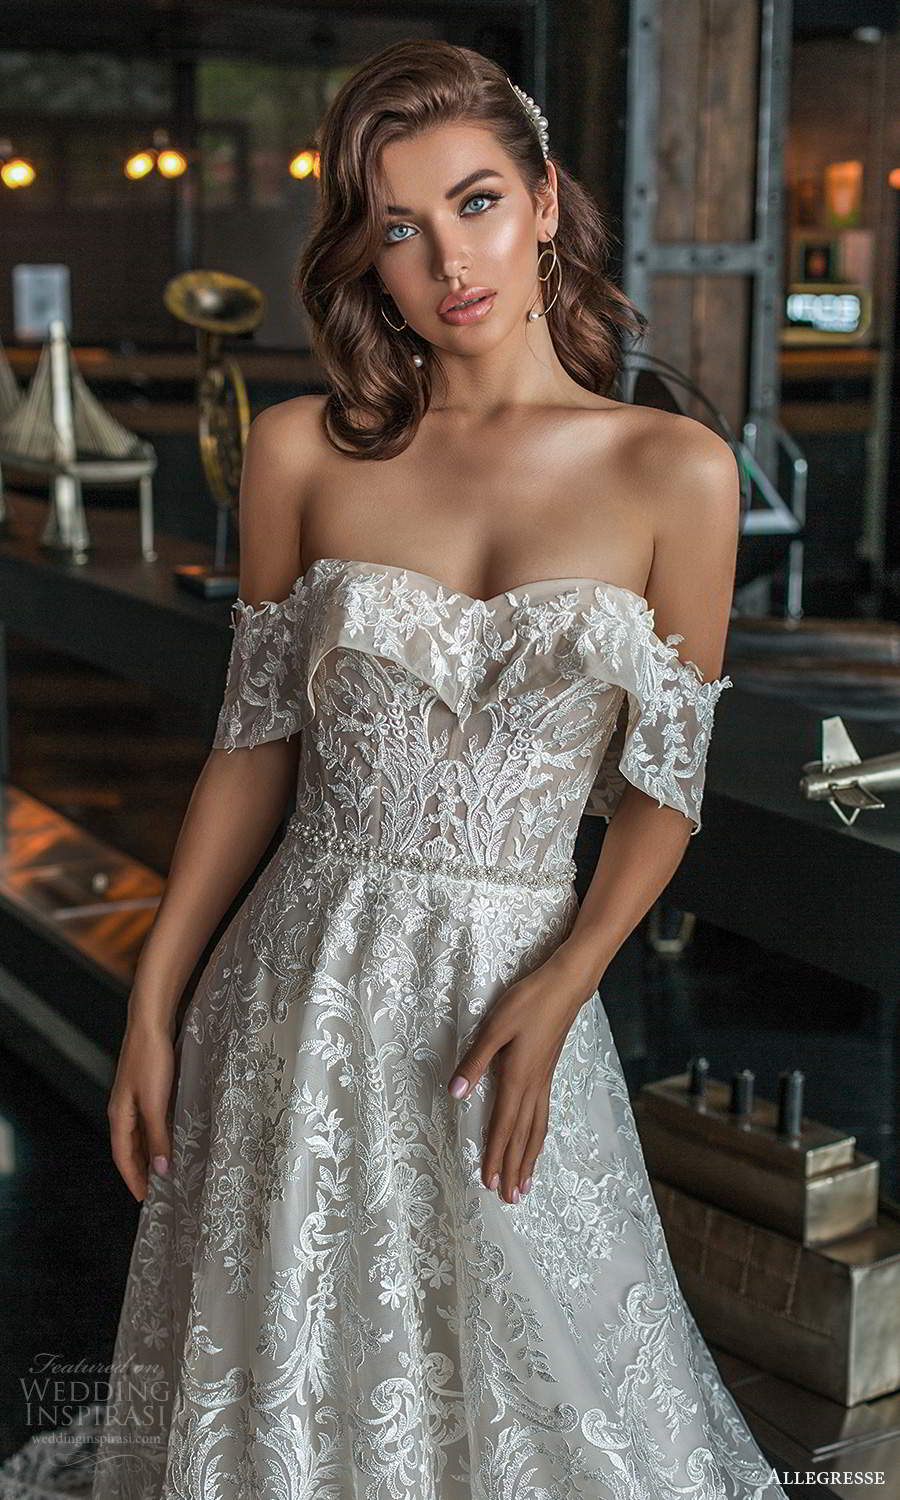 allegresse 2021 bridal off shoulder straps semi sweetheart foldover neckline fully embellished a line ball gown wedding dress chapel train (3) zv